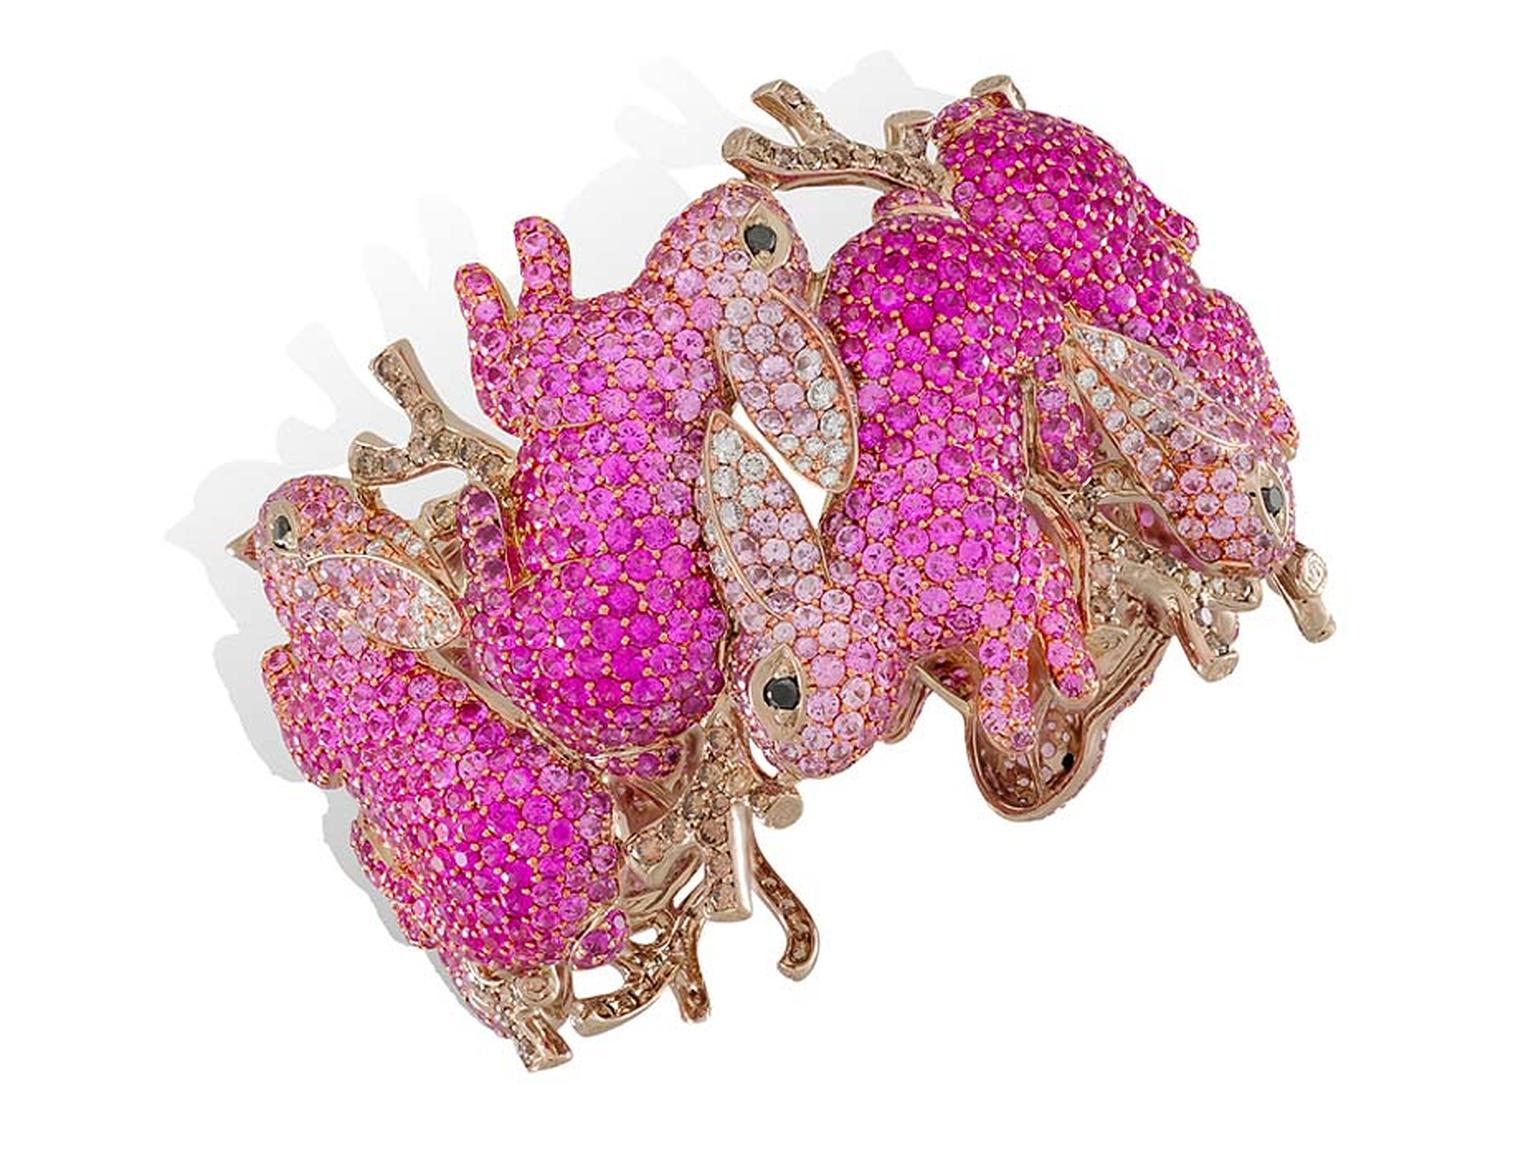 Lydia Courteille pink tourmaline and pink sapphire fine jewellery bracelet from the Lapin Rose collection.